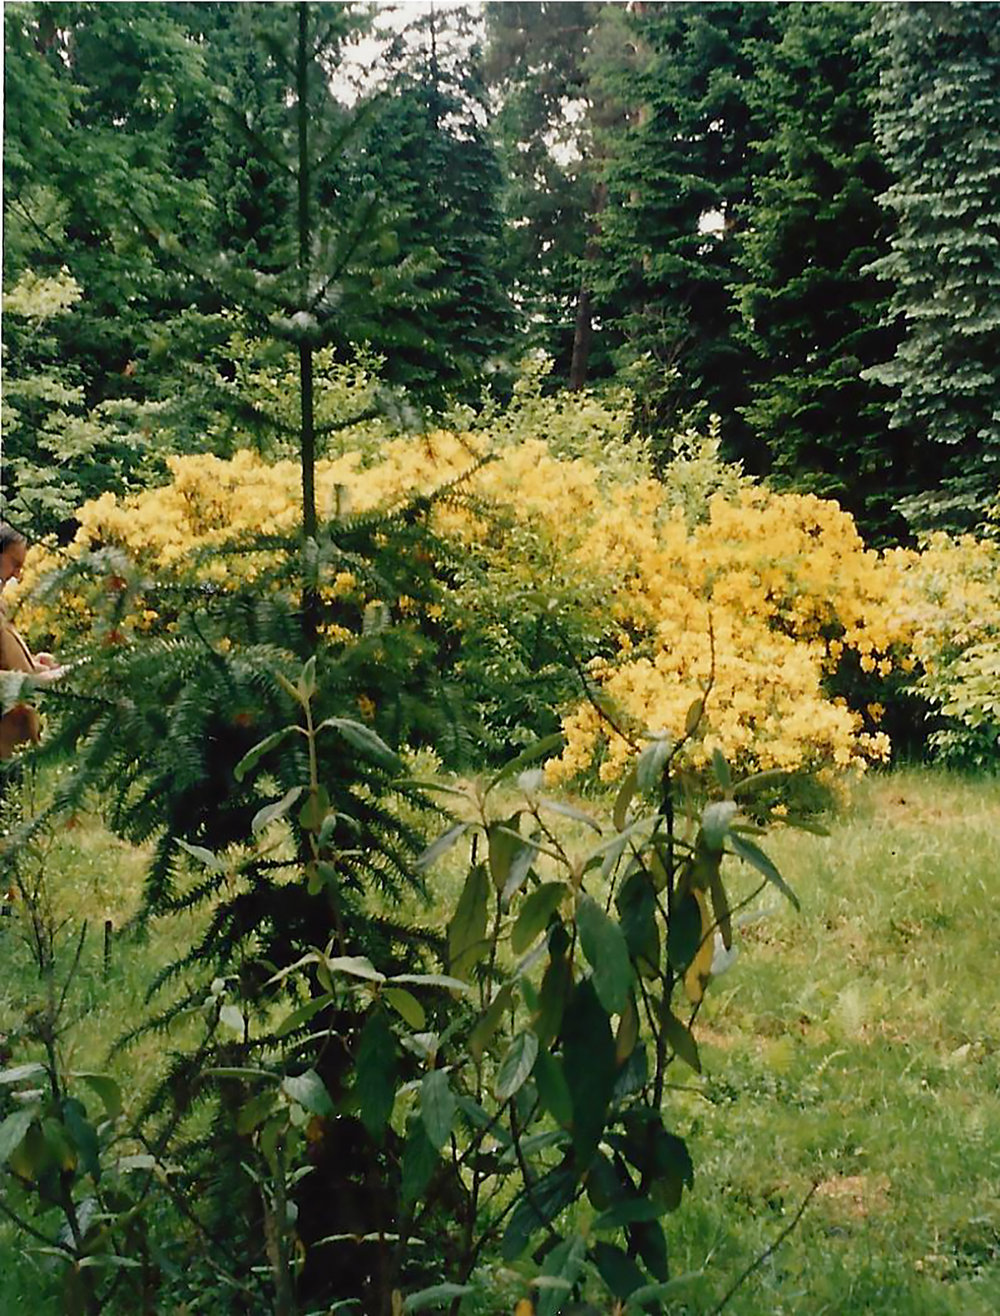 Image-10-Poland-Rhododendron-luteum-in-the-Jagiellonian-Univeristy-B-1.jpg